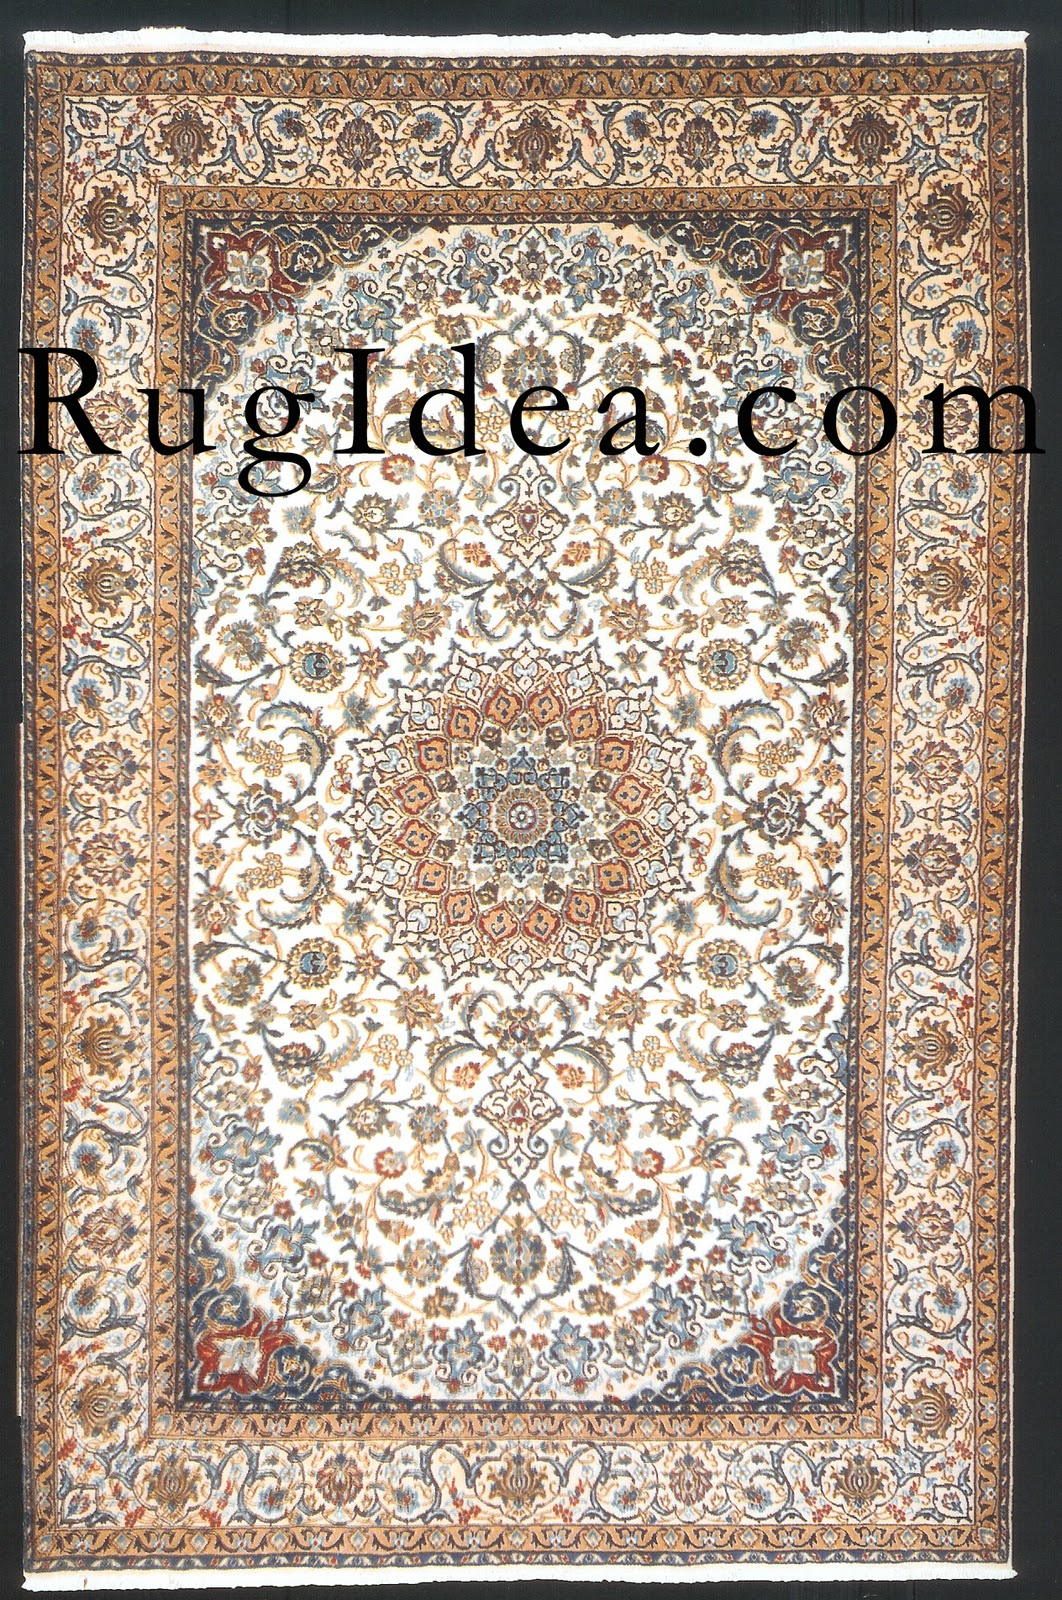 Rug Master Nain Rugs Carpets How Authentic Is The Signature